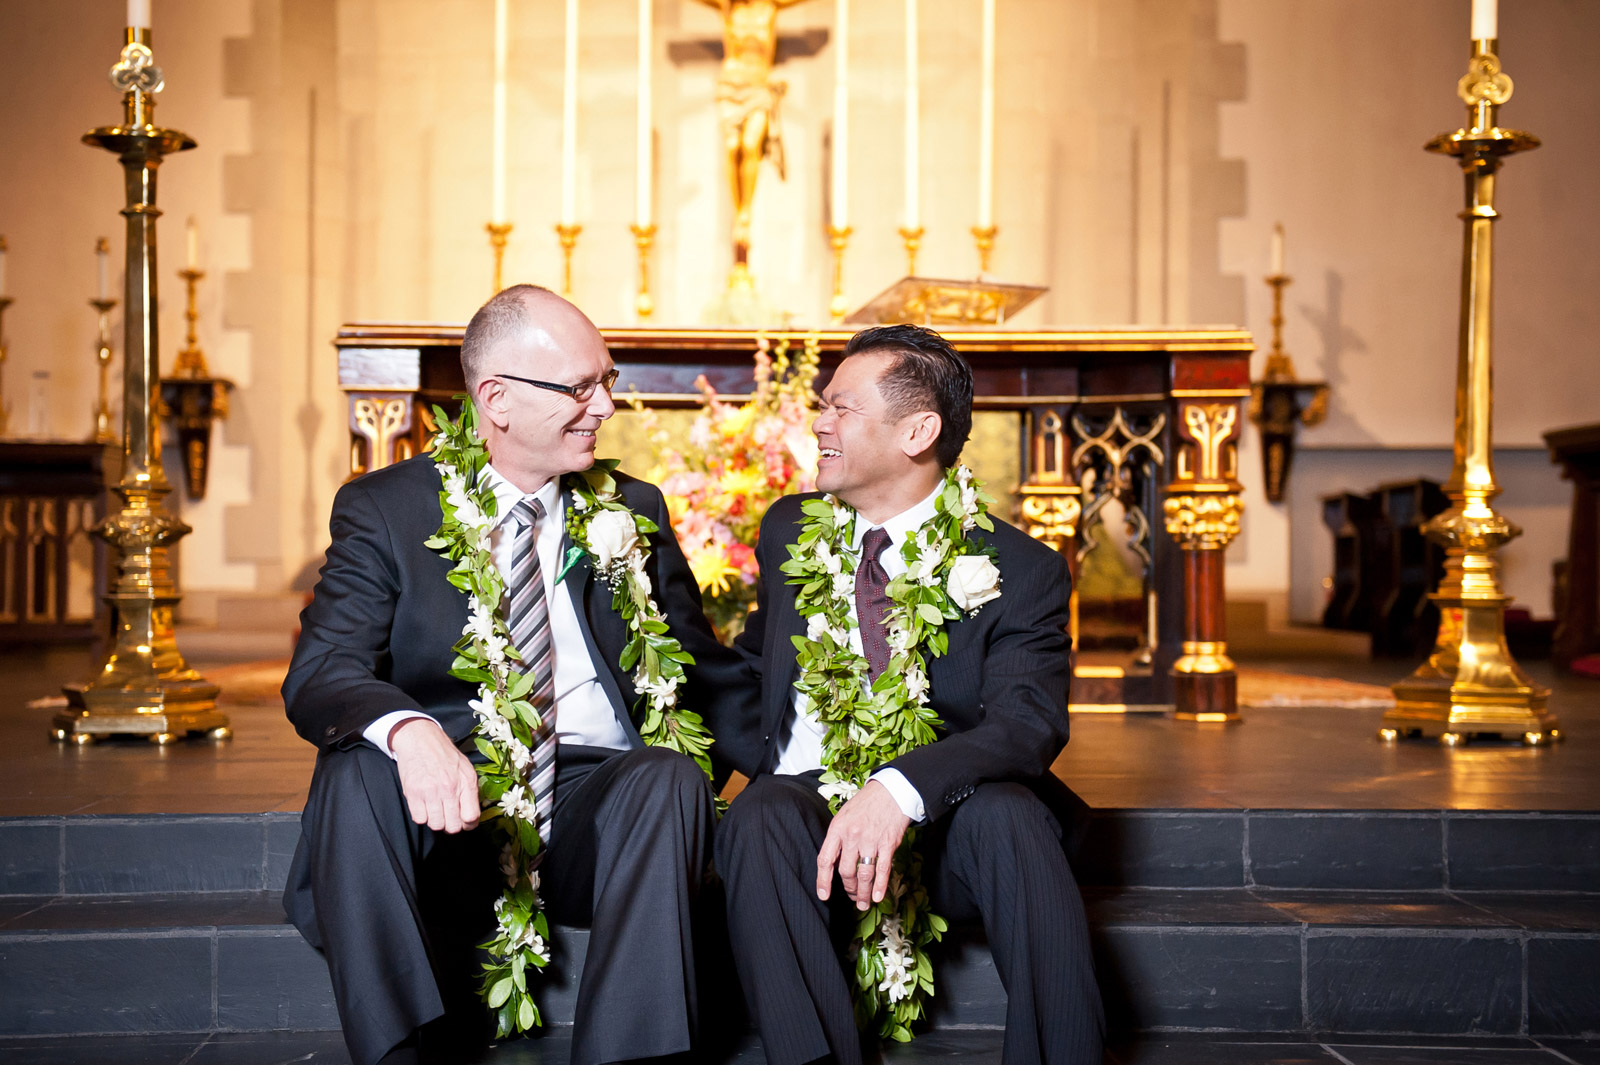 Gay marriage couple celebrate their same sex ceremony on the steps of the church altar